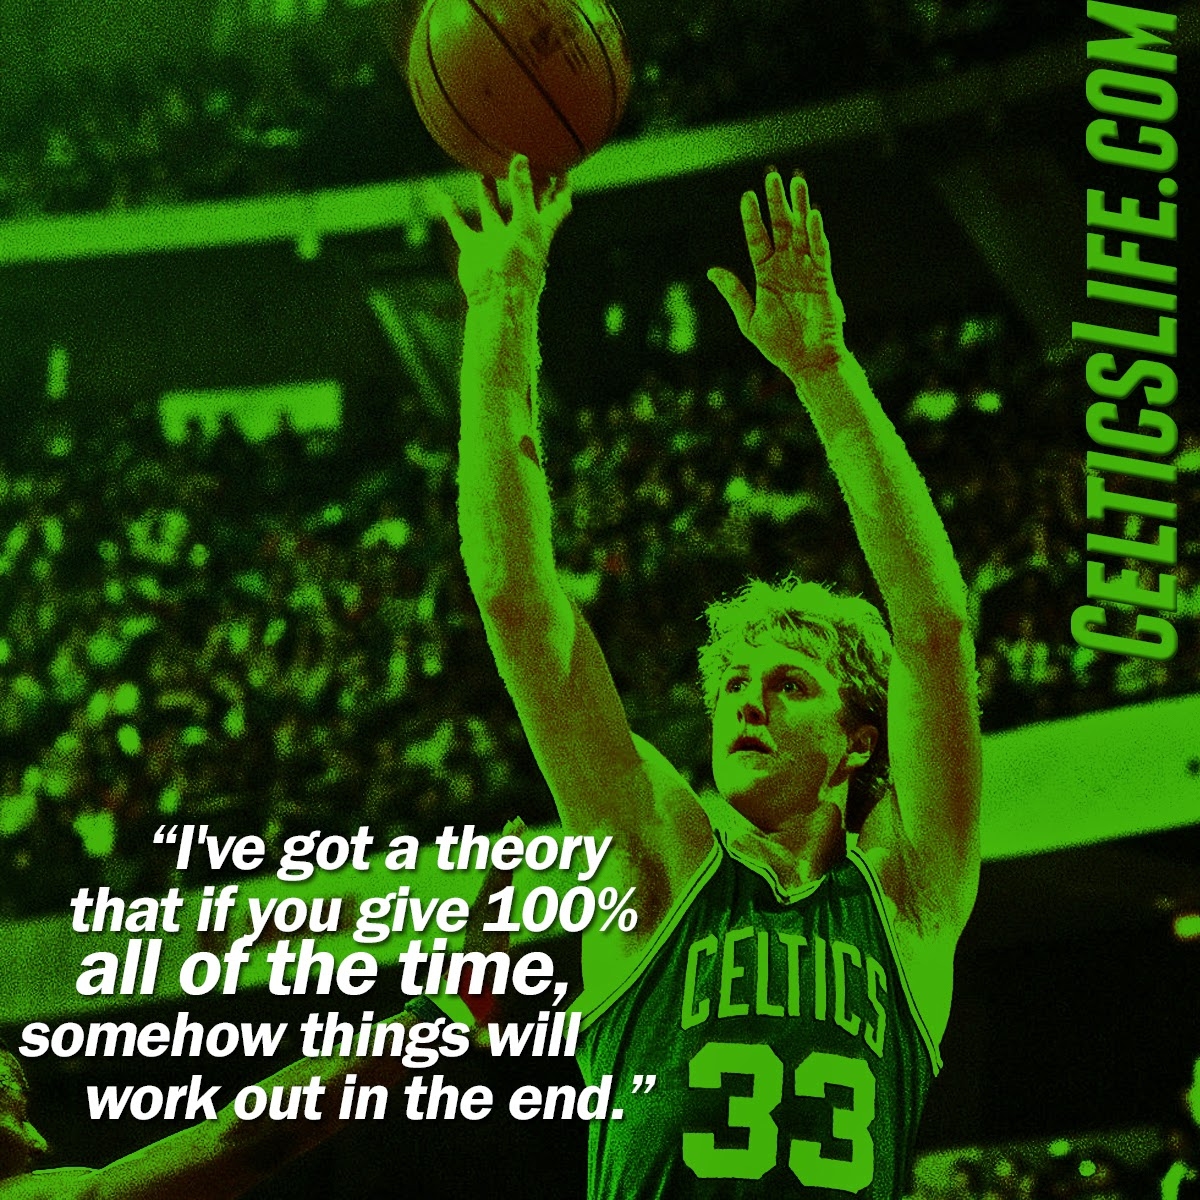 a life and career of larry bird a basketball player It was larry bird's height that made his basketball skills so remarkable a 6-foot-9 forward who could dribble, pass and shoot the way bird could made him one of the greatest nba players we've.